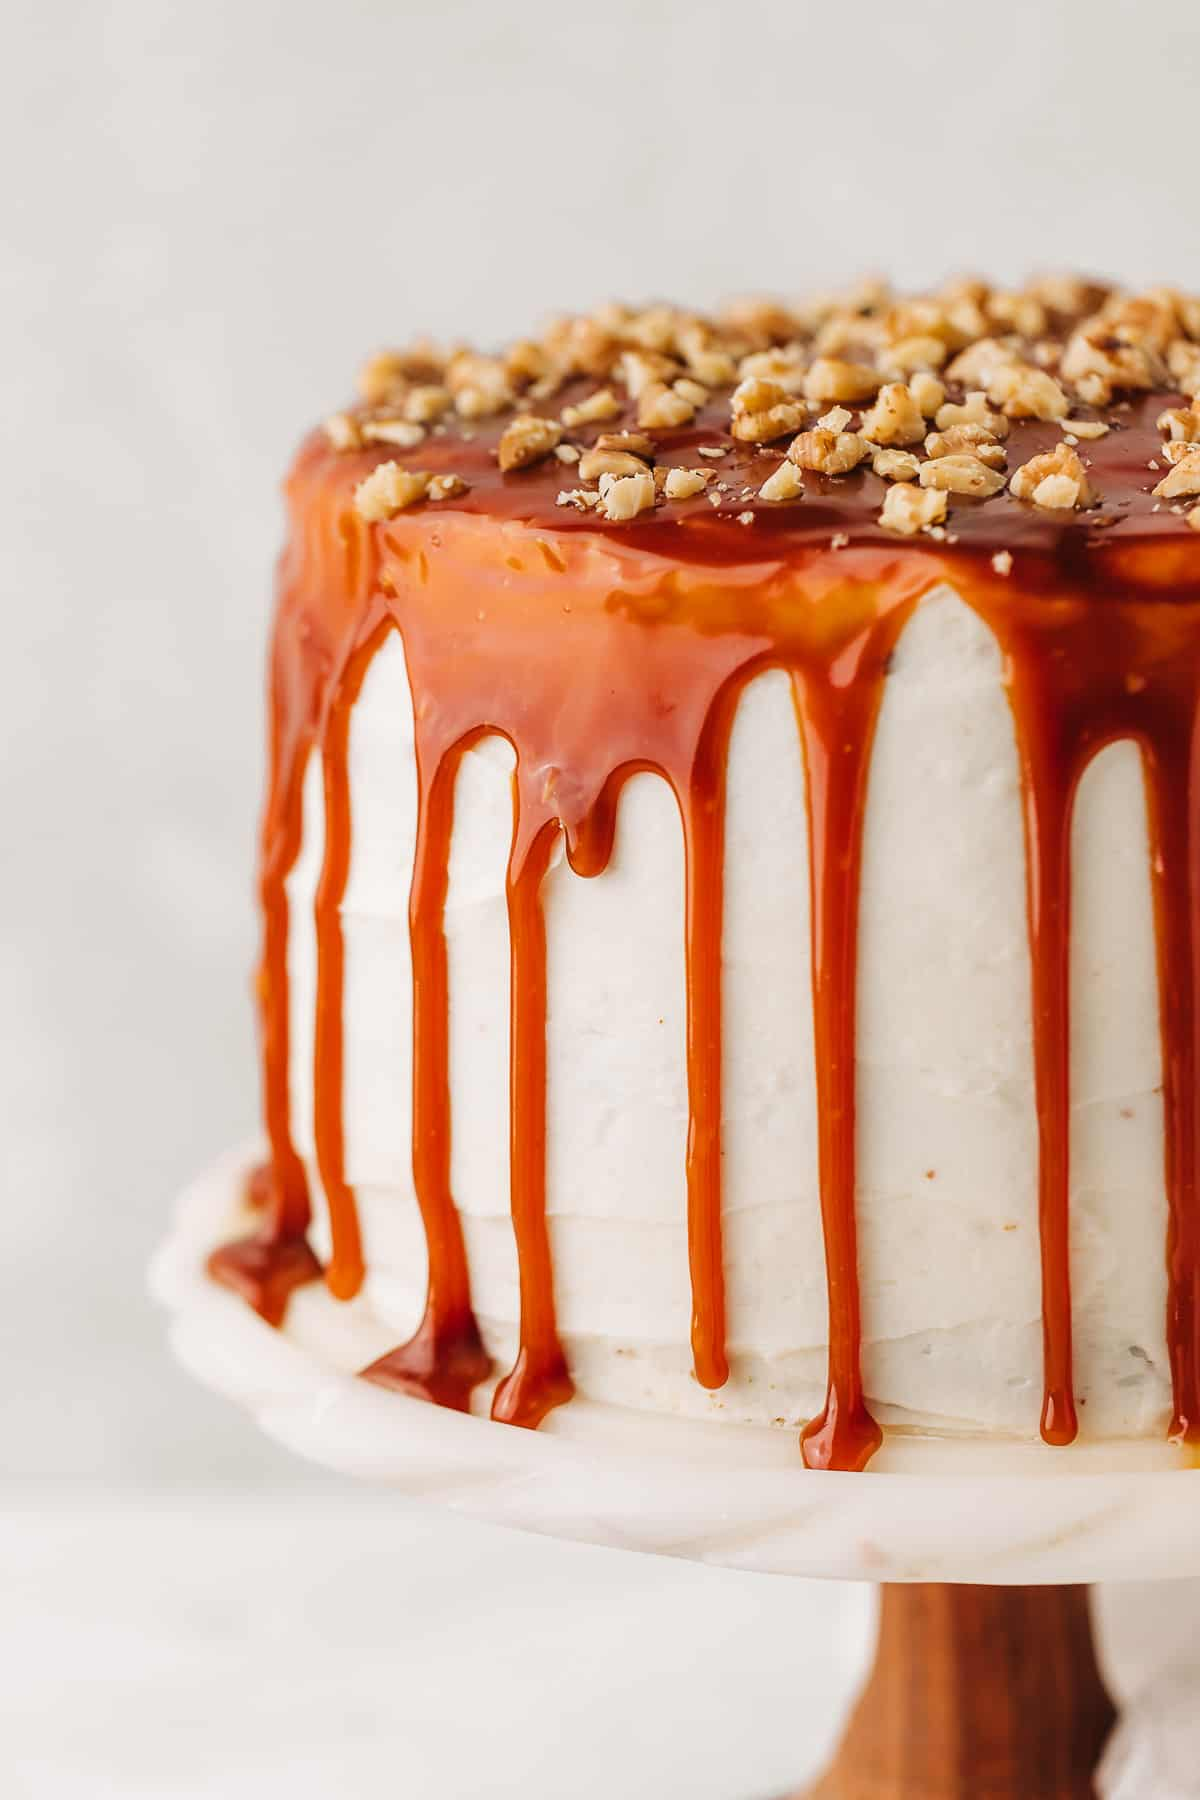 Carrot cake with cream cheese frosting topped with caramel sauce and chopped walnuts on a marble cake stand.